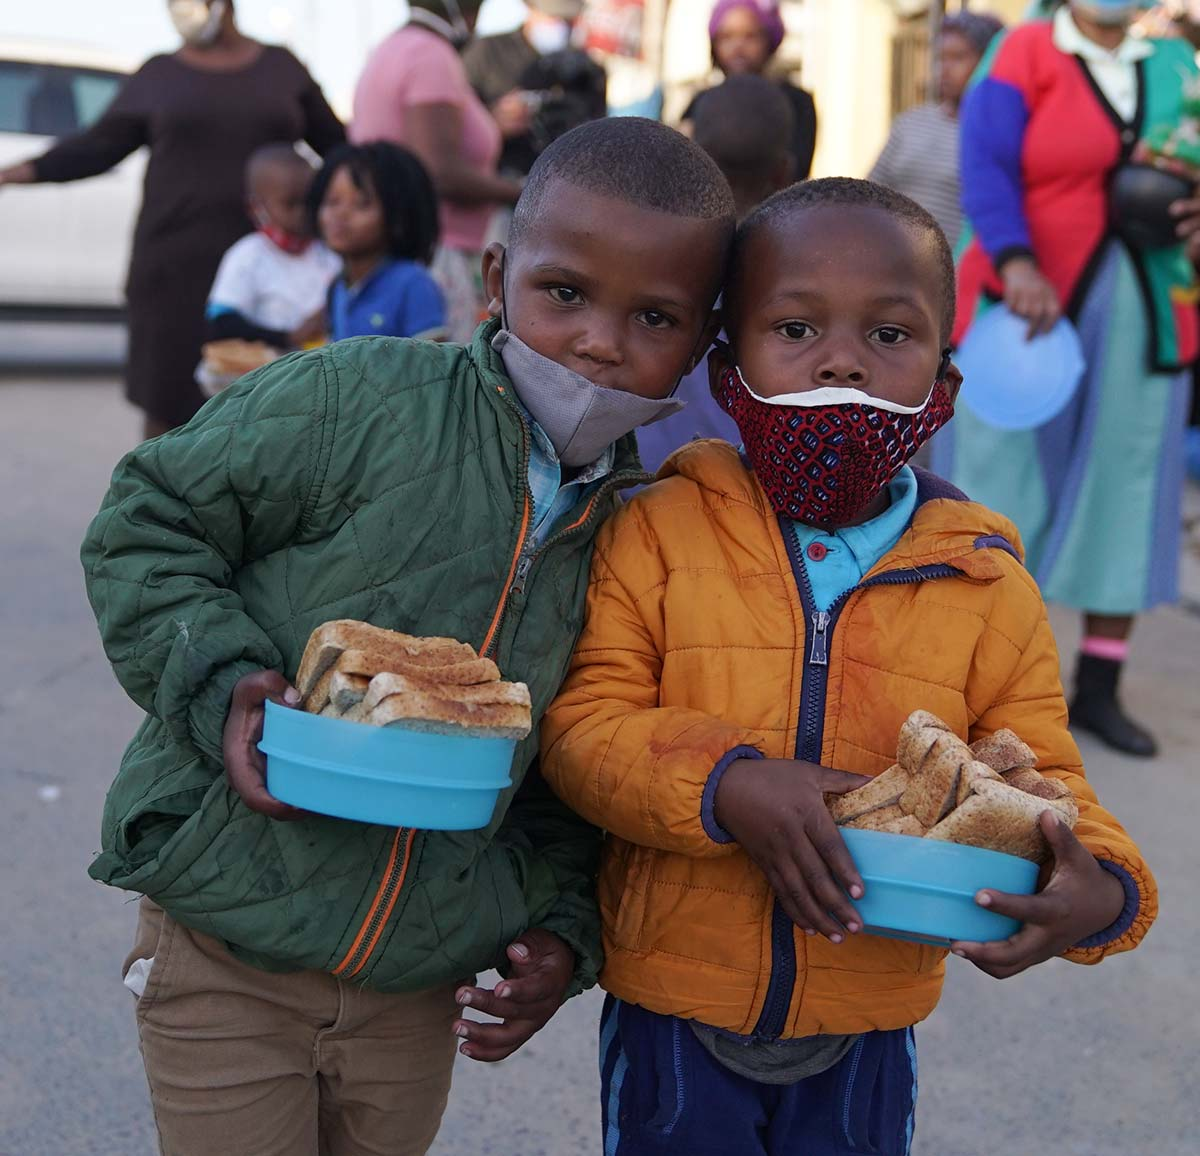 Two little boys wearing facemasks holding sandwiches provided by Ladles of Love